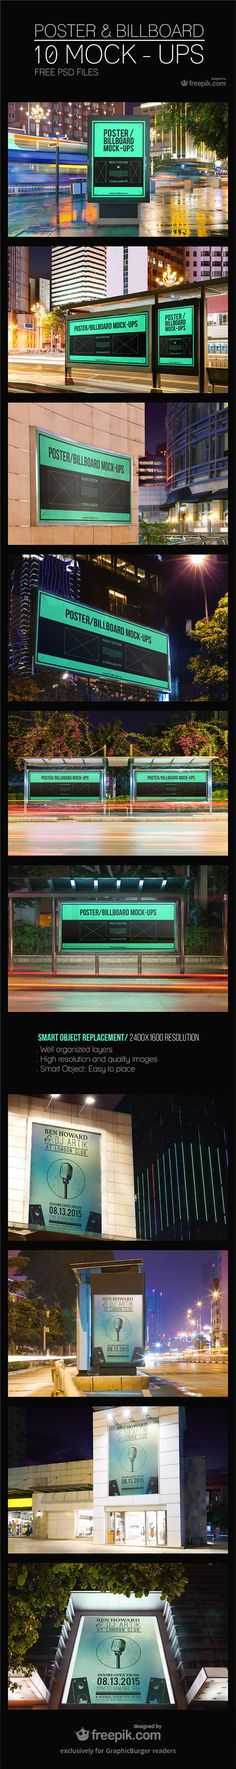 Today, we're excited to present you a nice set of 10 Poster & Billboard PSD MockUps with high quality. Display your advertising campaign or poster in an outdoor environment in realistic way. Have a look & feel FREE to download right now!